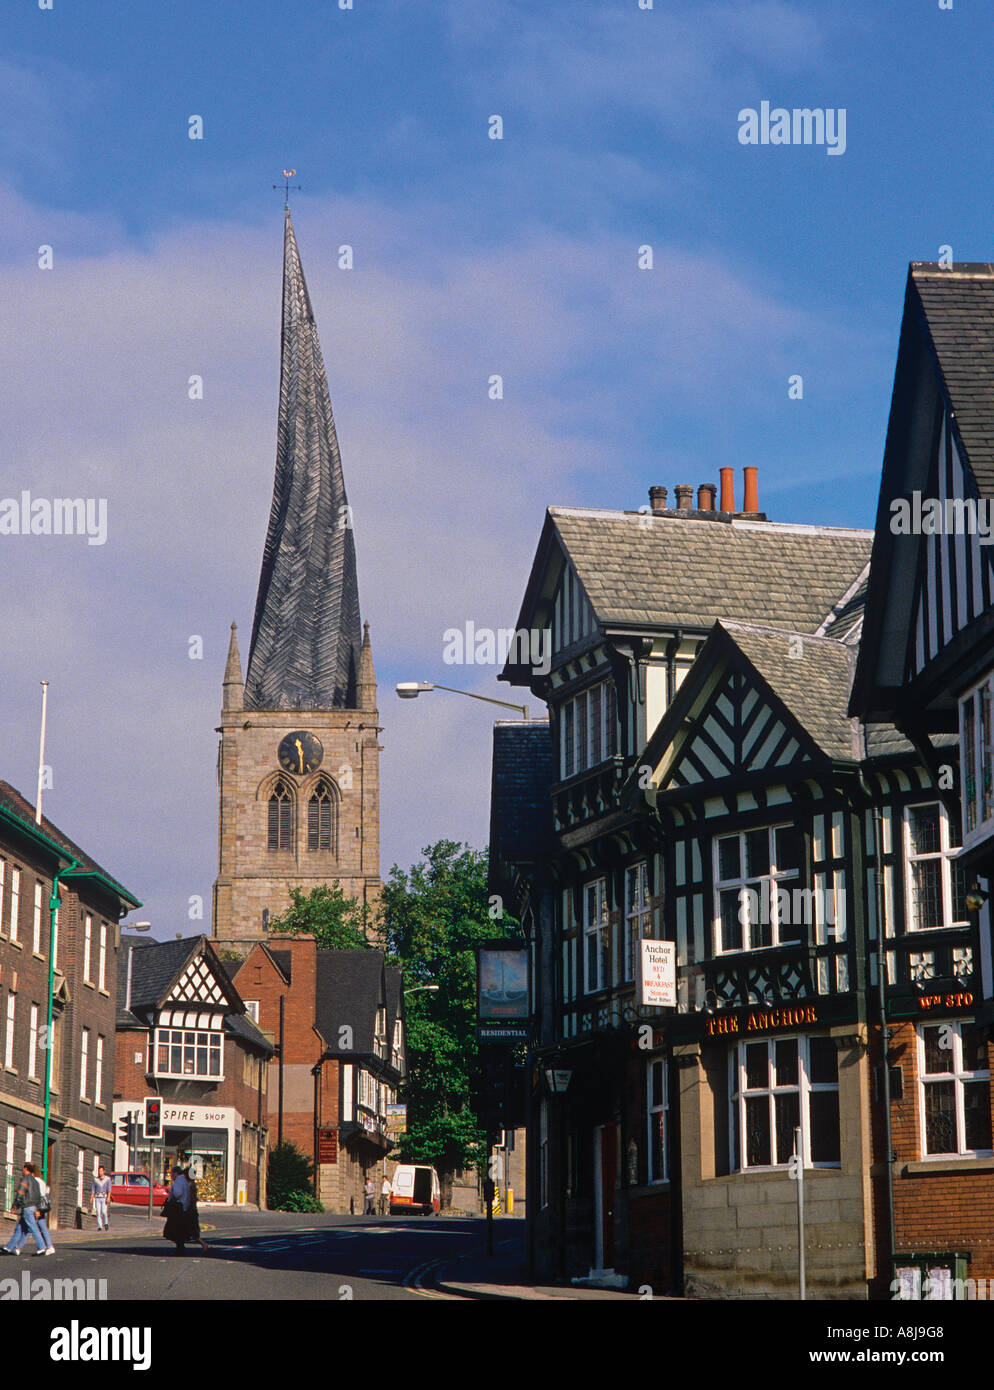 The twisted Spire of the Church of St Mary and All Saints in Chesterfield - Stock Image